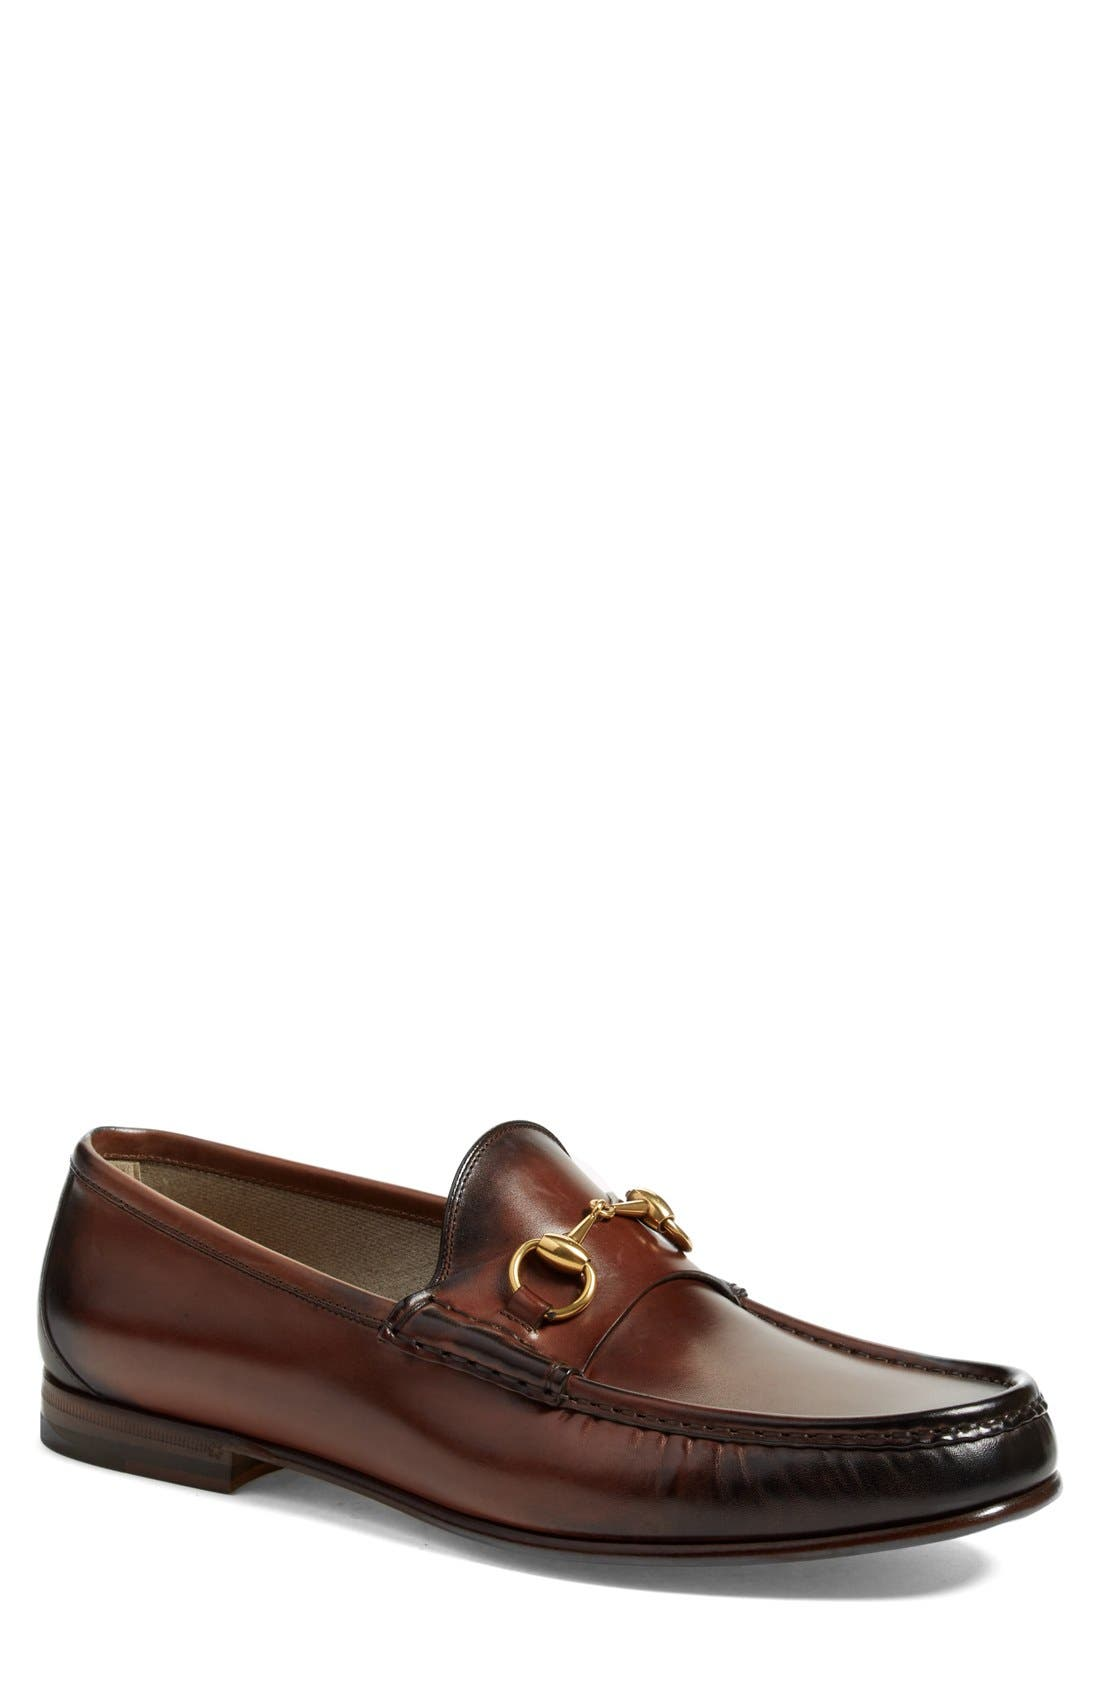 'Roos' Bit Loafer,                             Main thumbnail 3, color,